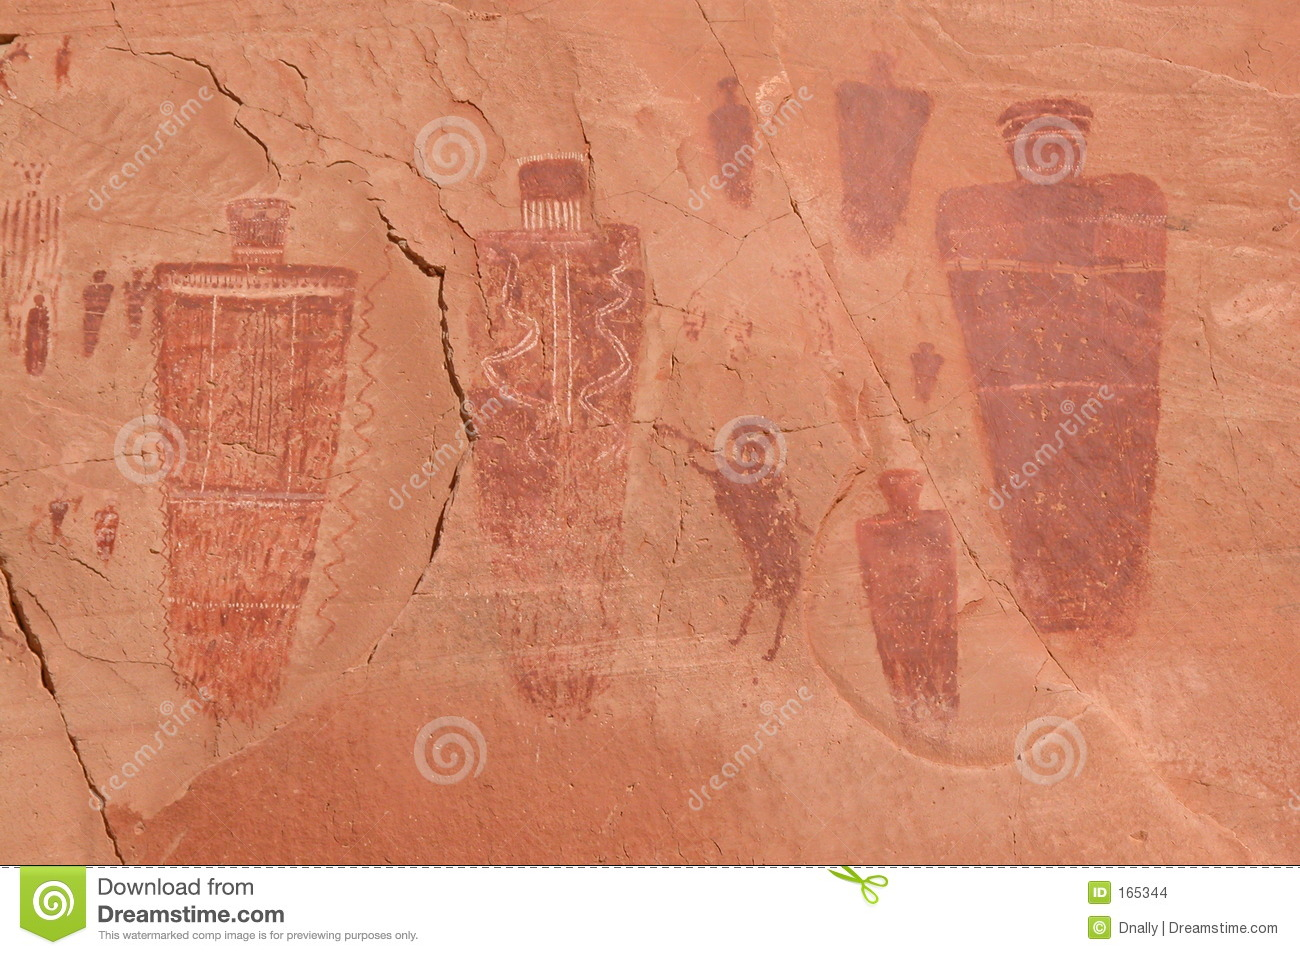 native american pictographs stock photo - image of america